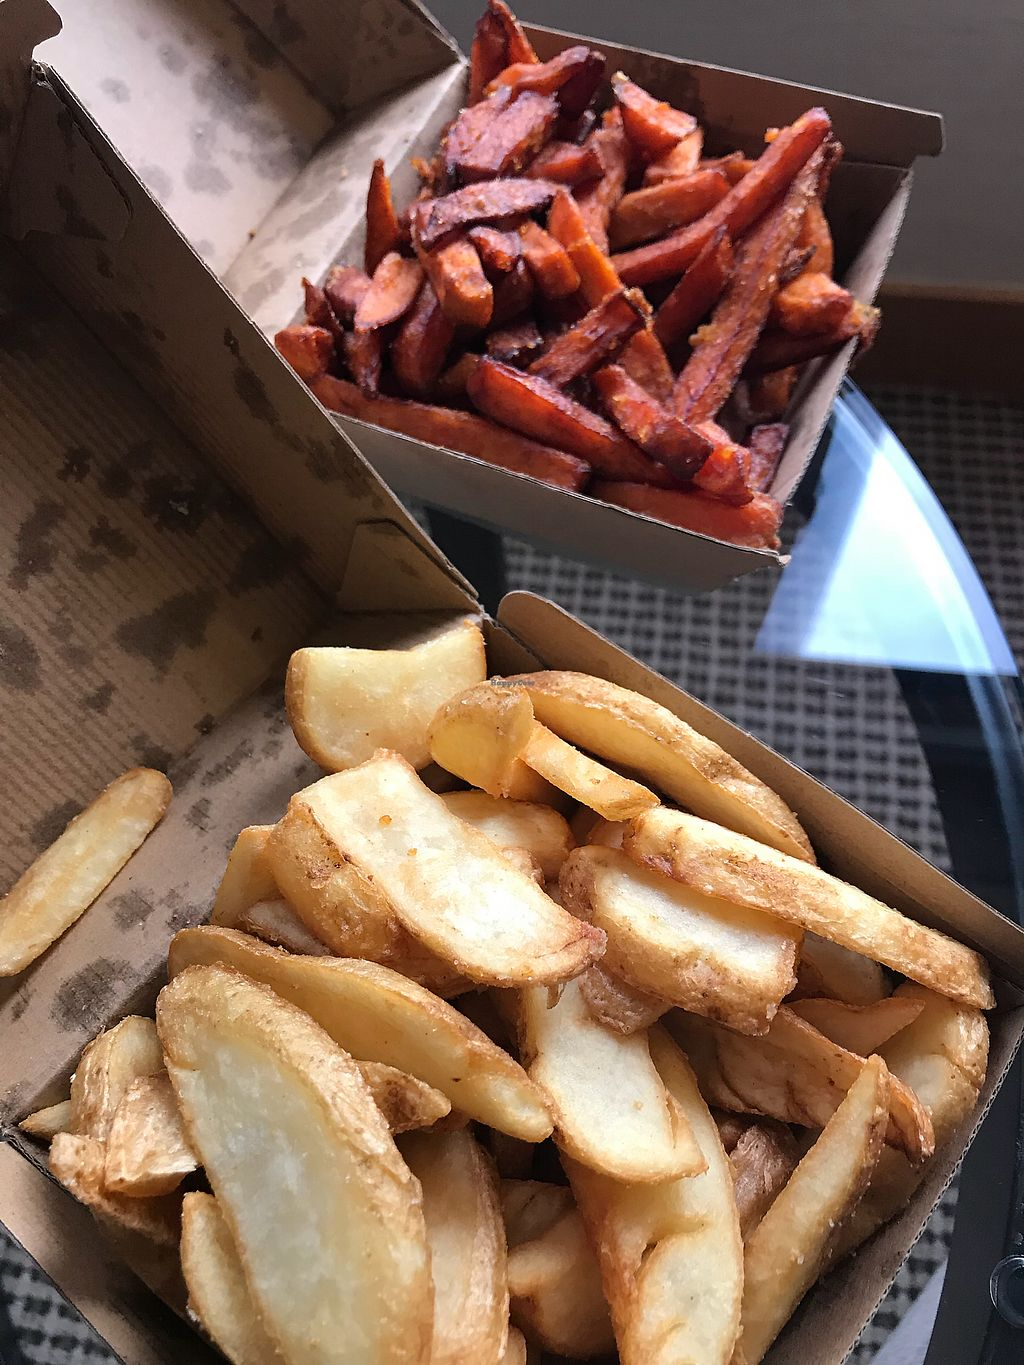 """Photo of Lord of the Fries - Britomart  by <a href=""""/members/profile/LenaHaapala"""">LenaHaapala</a> <br/>Sweet potato and chunky fries  <br/> April 13, 2018  - <a href='/contact/abuse/image/82326/384902'>Report</a>"""